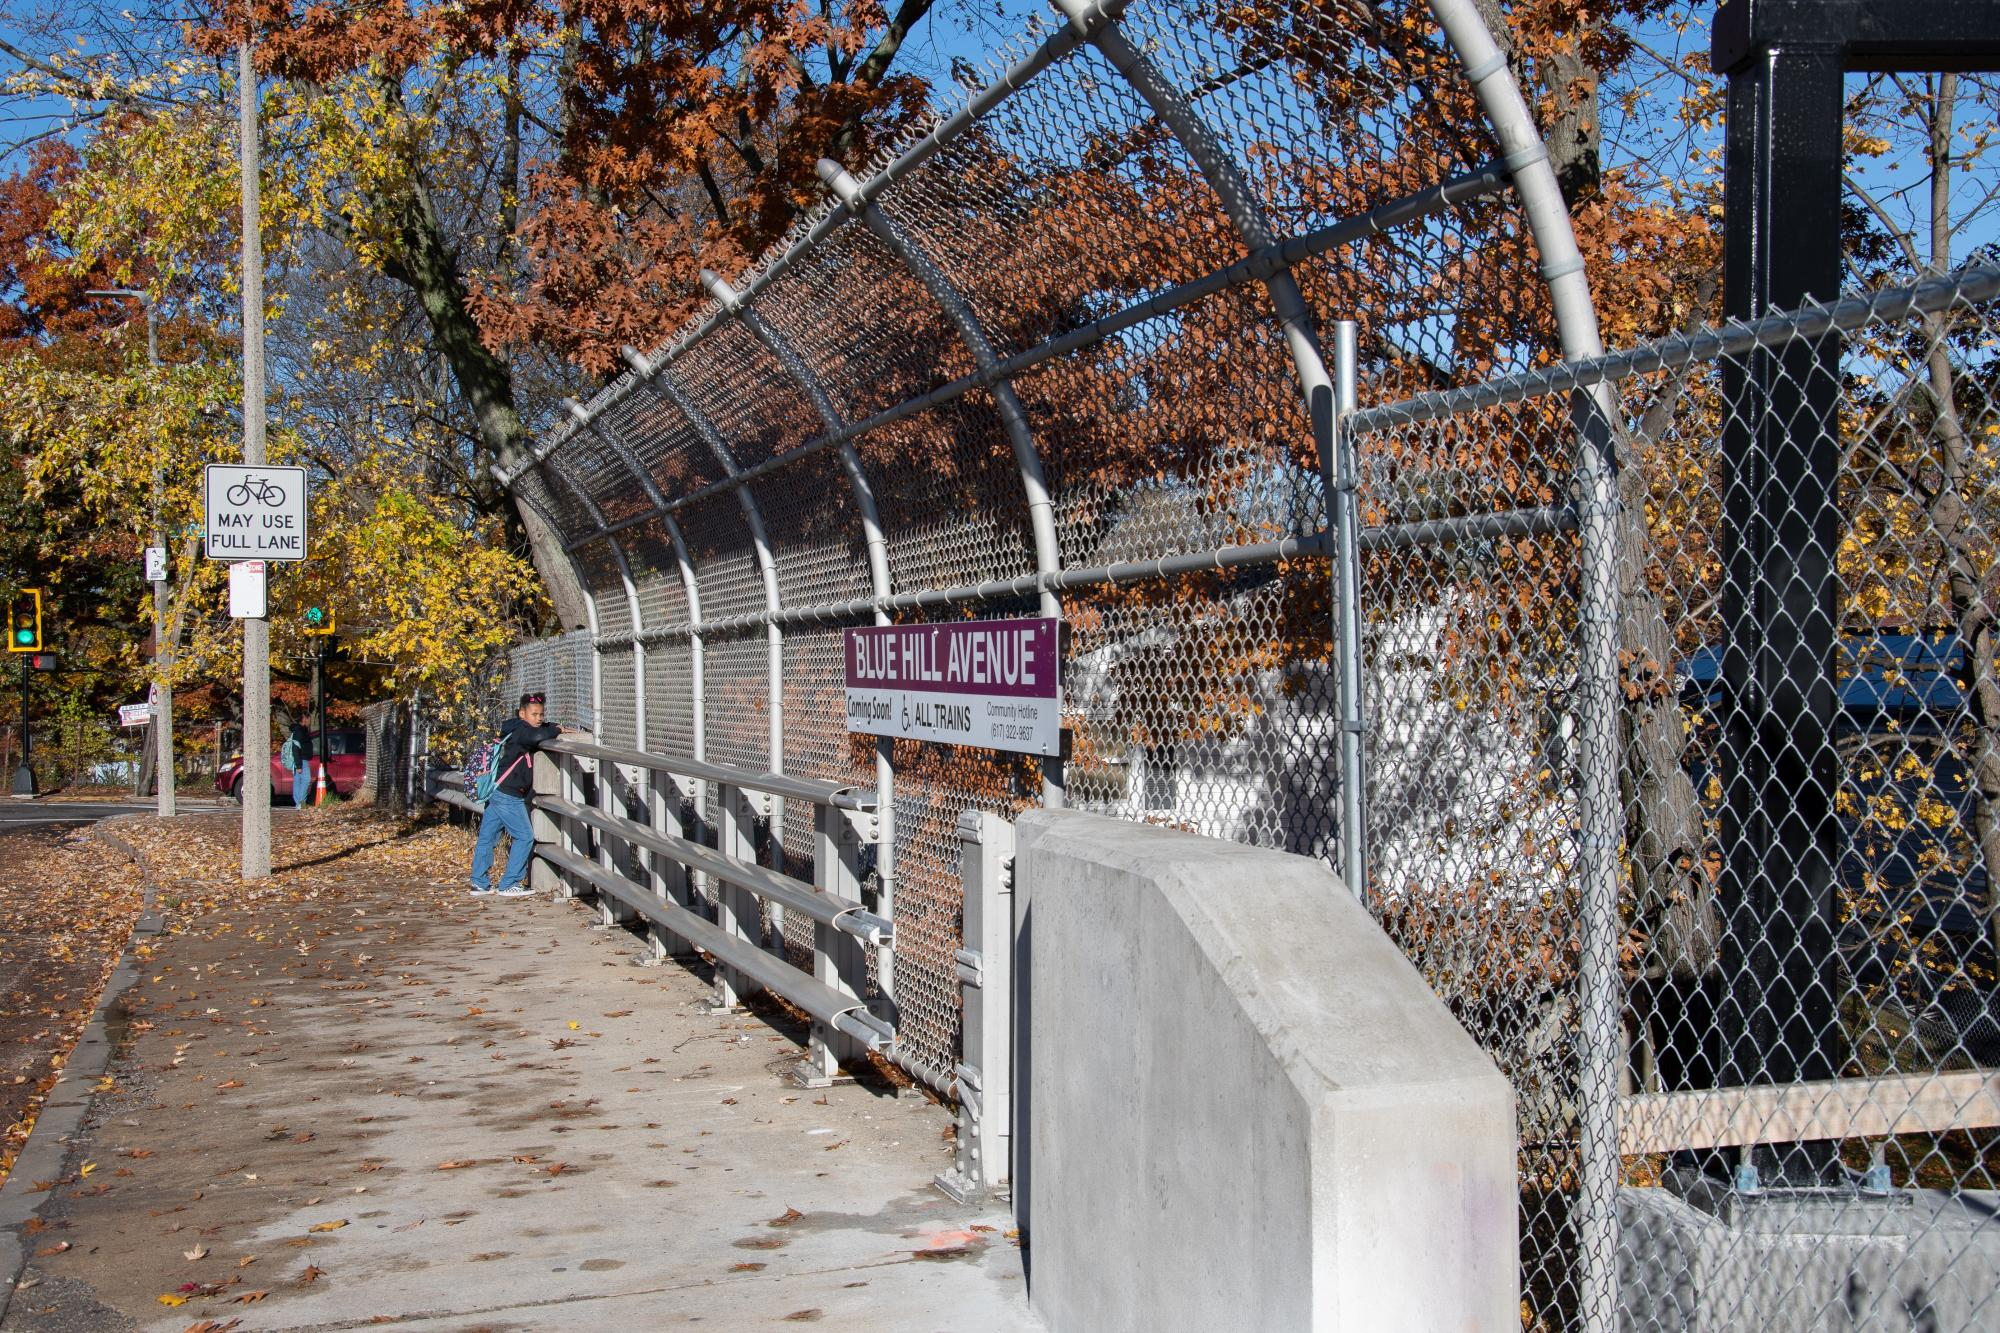 Blue Hill Ave station sign on adjacent bridge (November 2018)